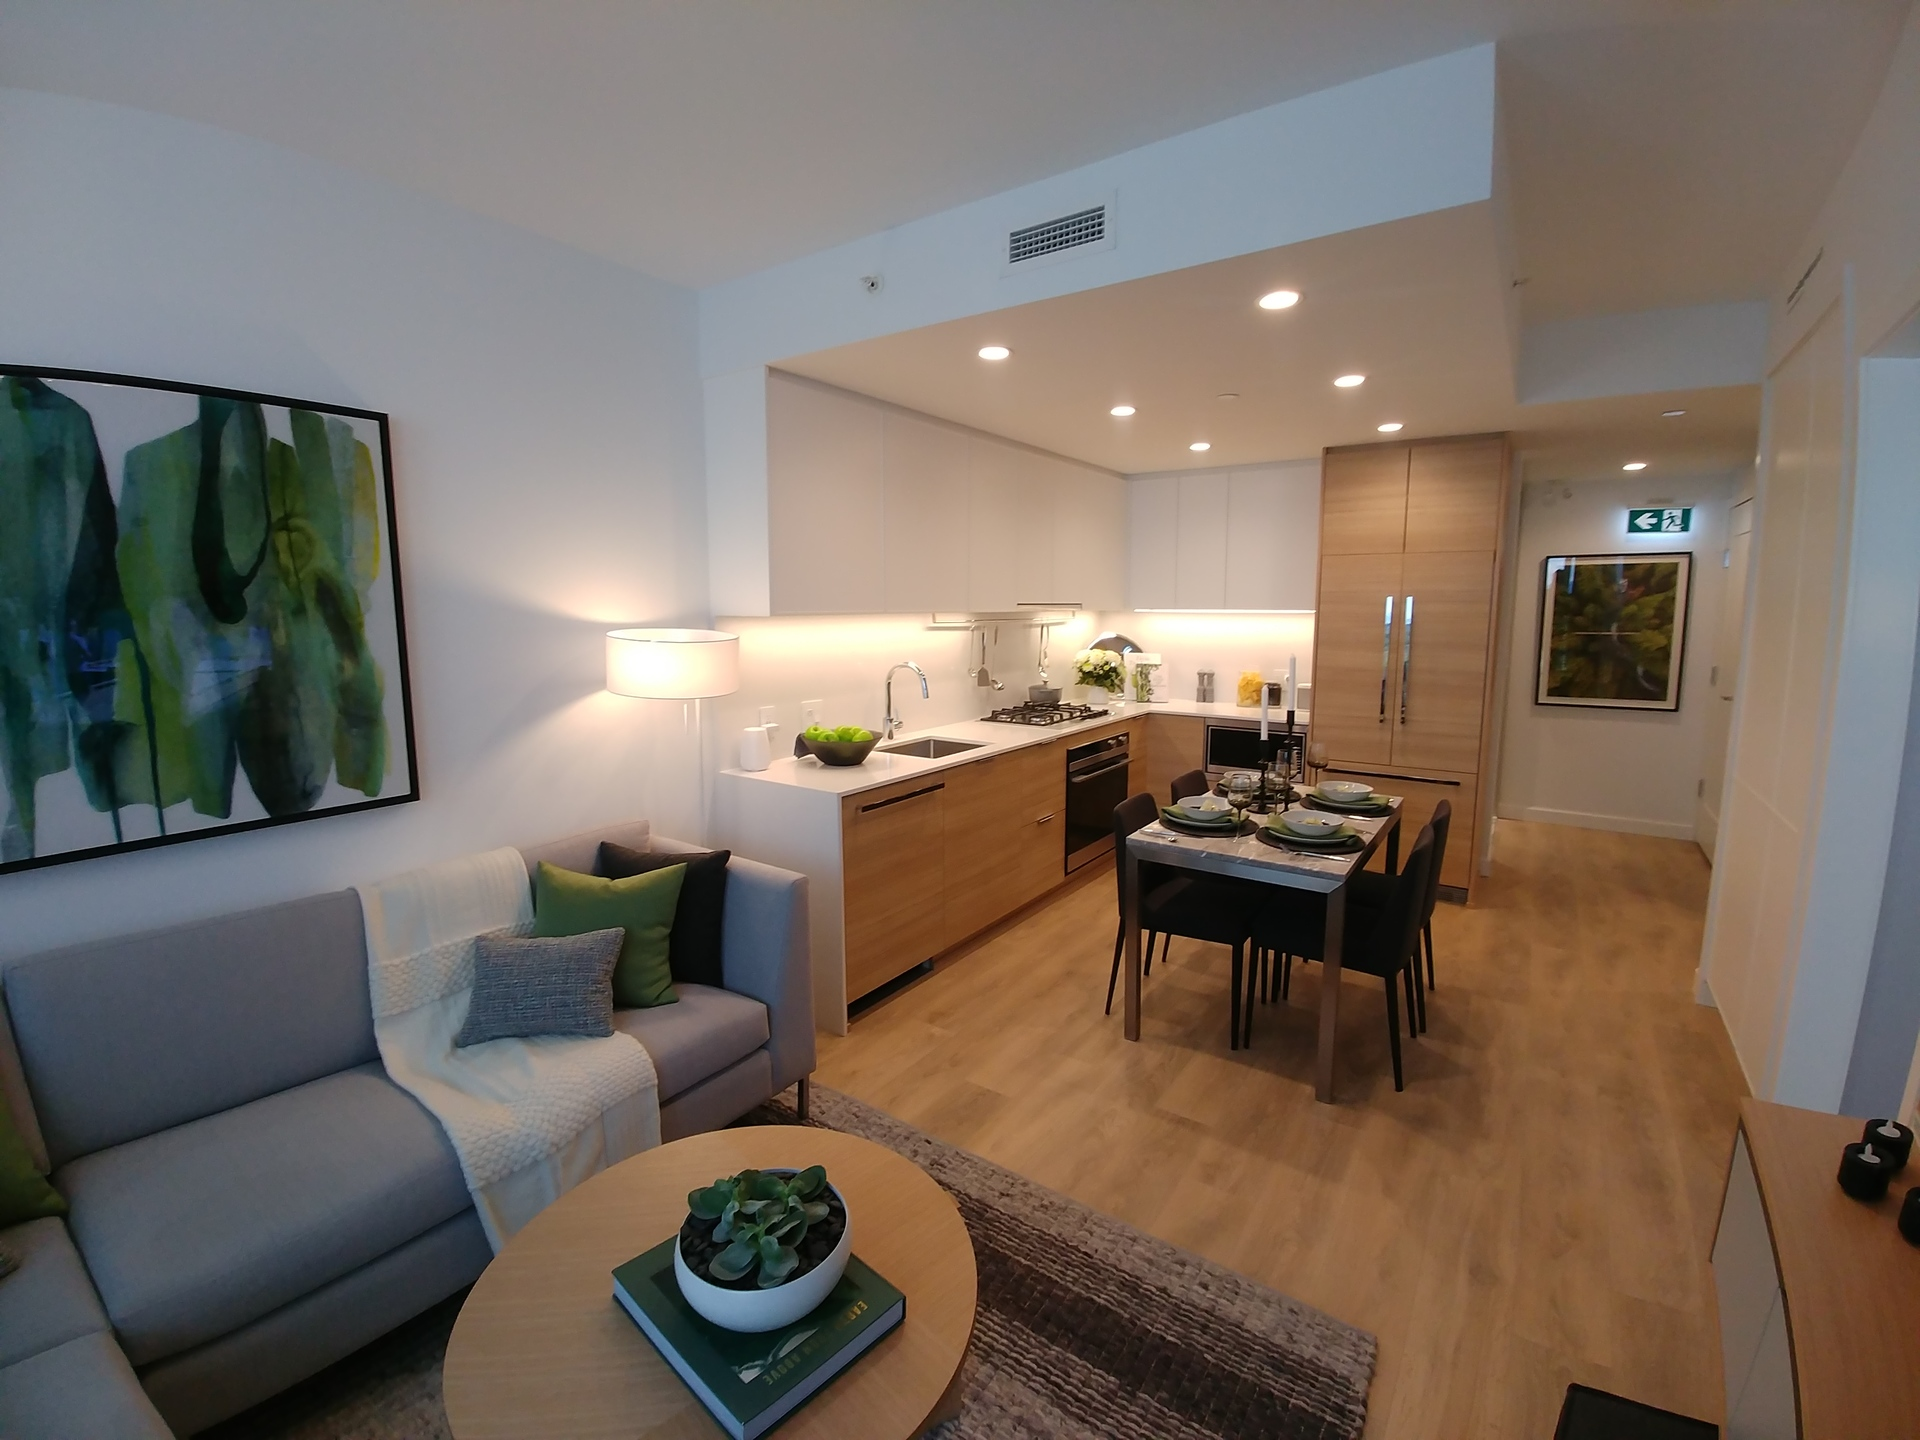 The Heights living space at West at The Heights on Austin (1029 Austin Avenue, Coquitlam West, Coquitlam)